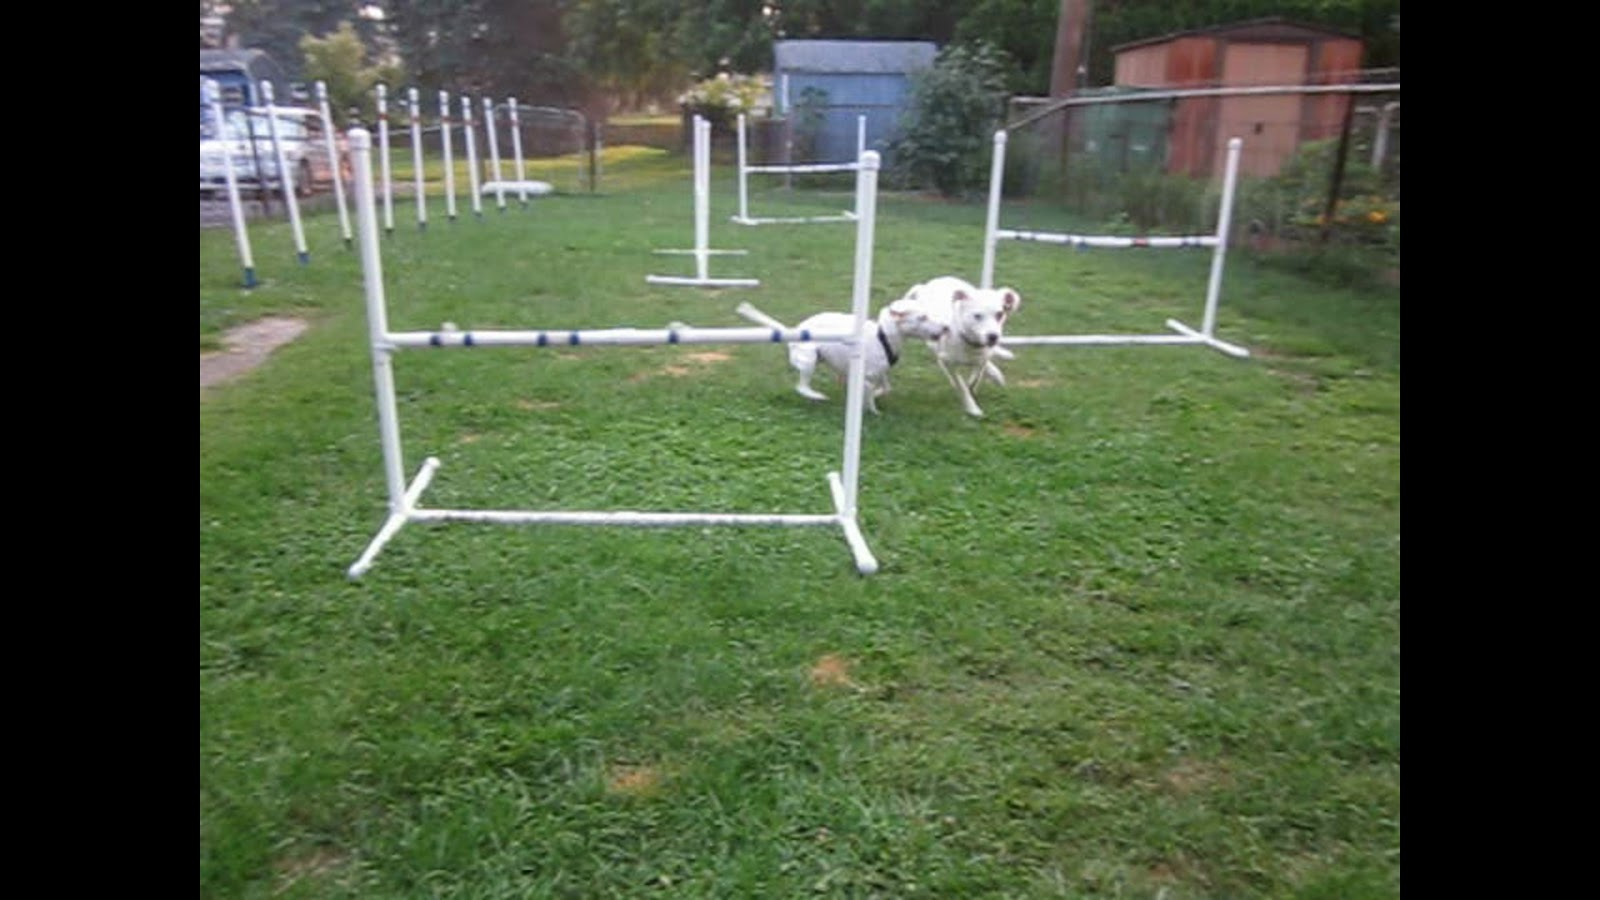 Yard Set Up With Jumps And Weaves